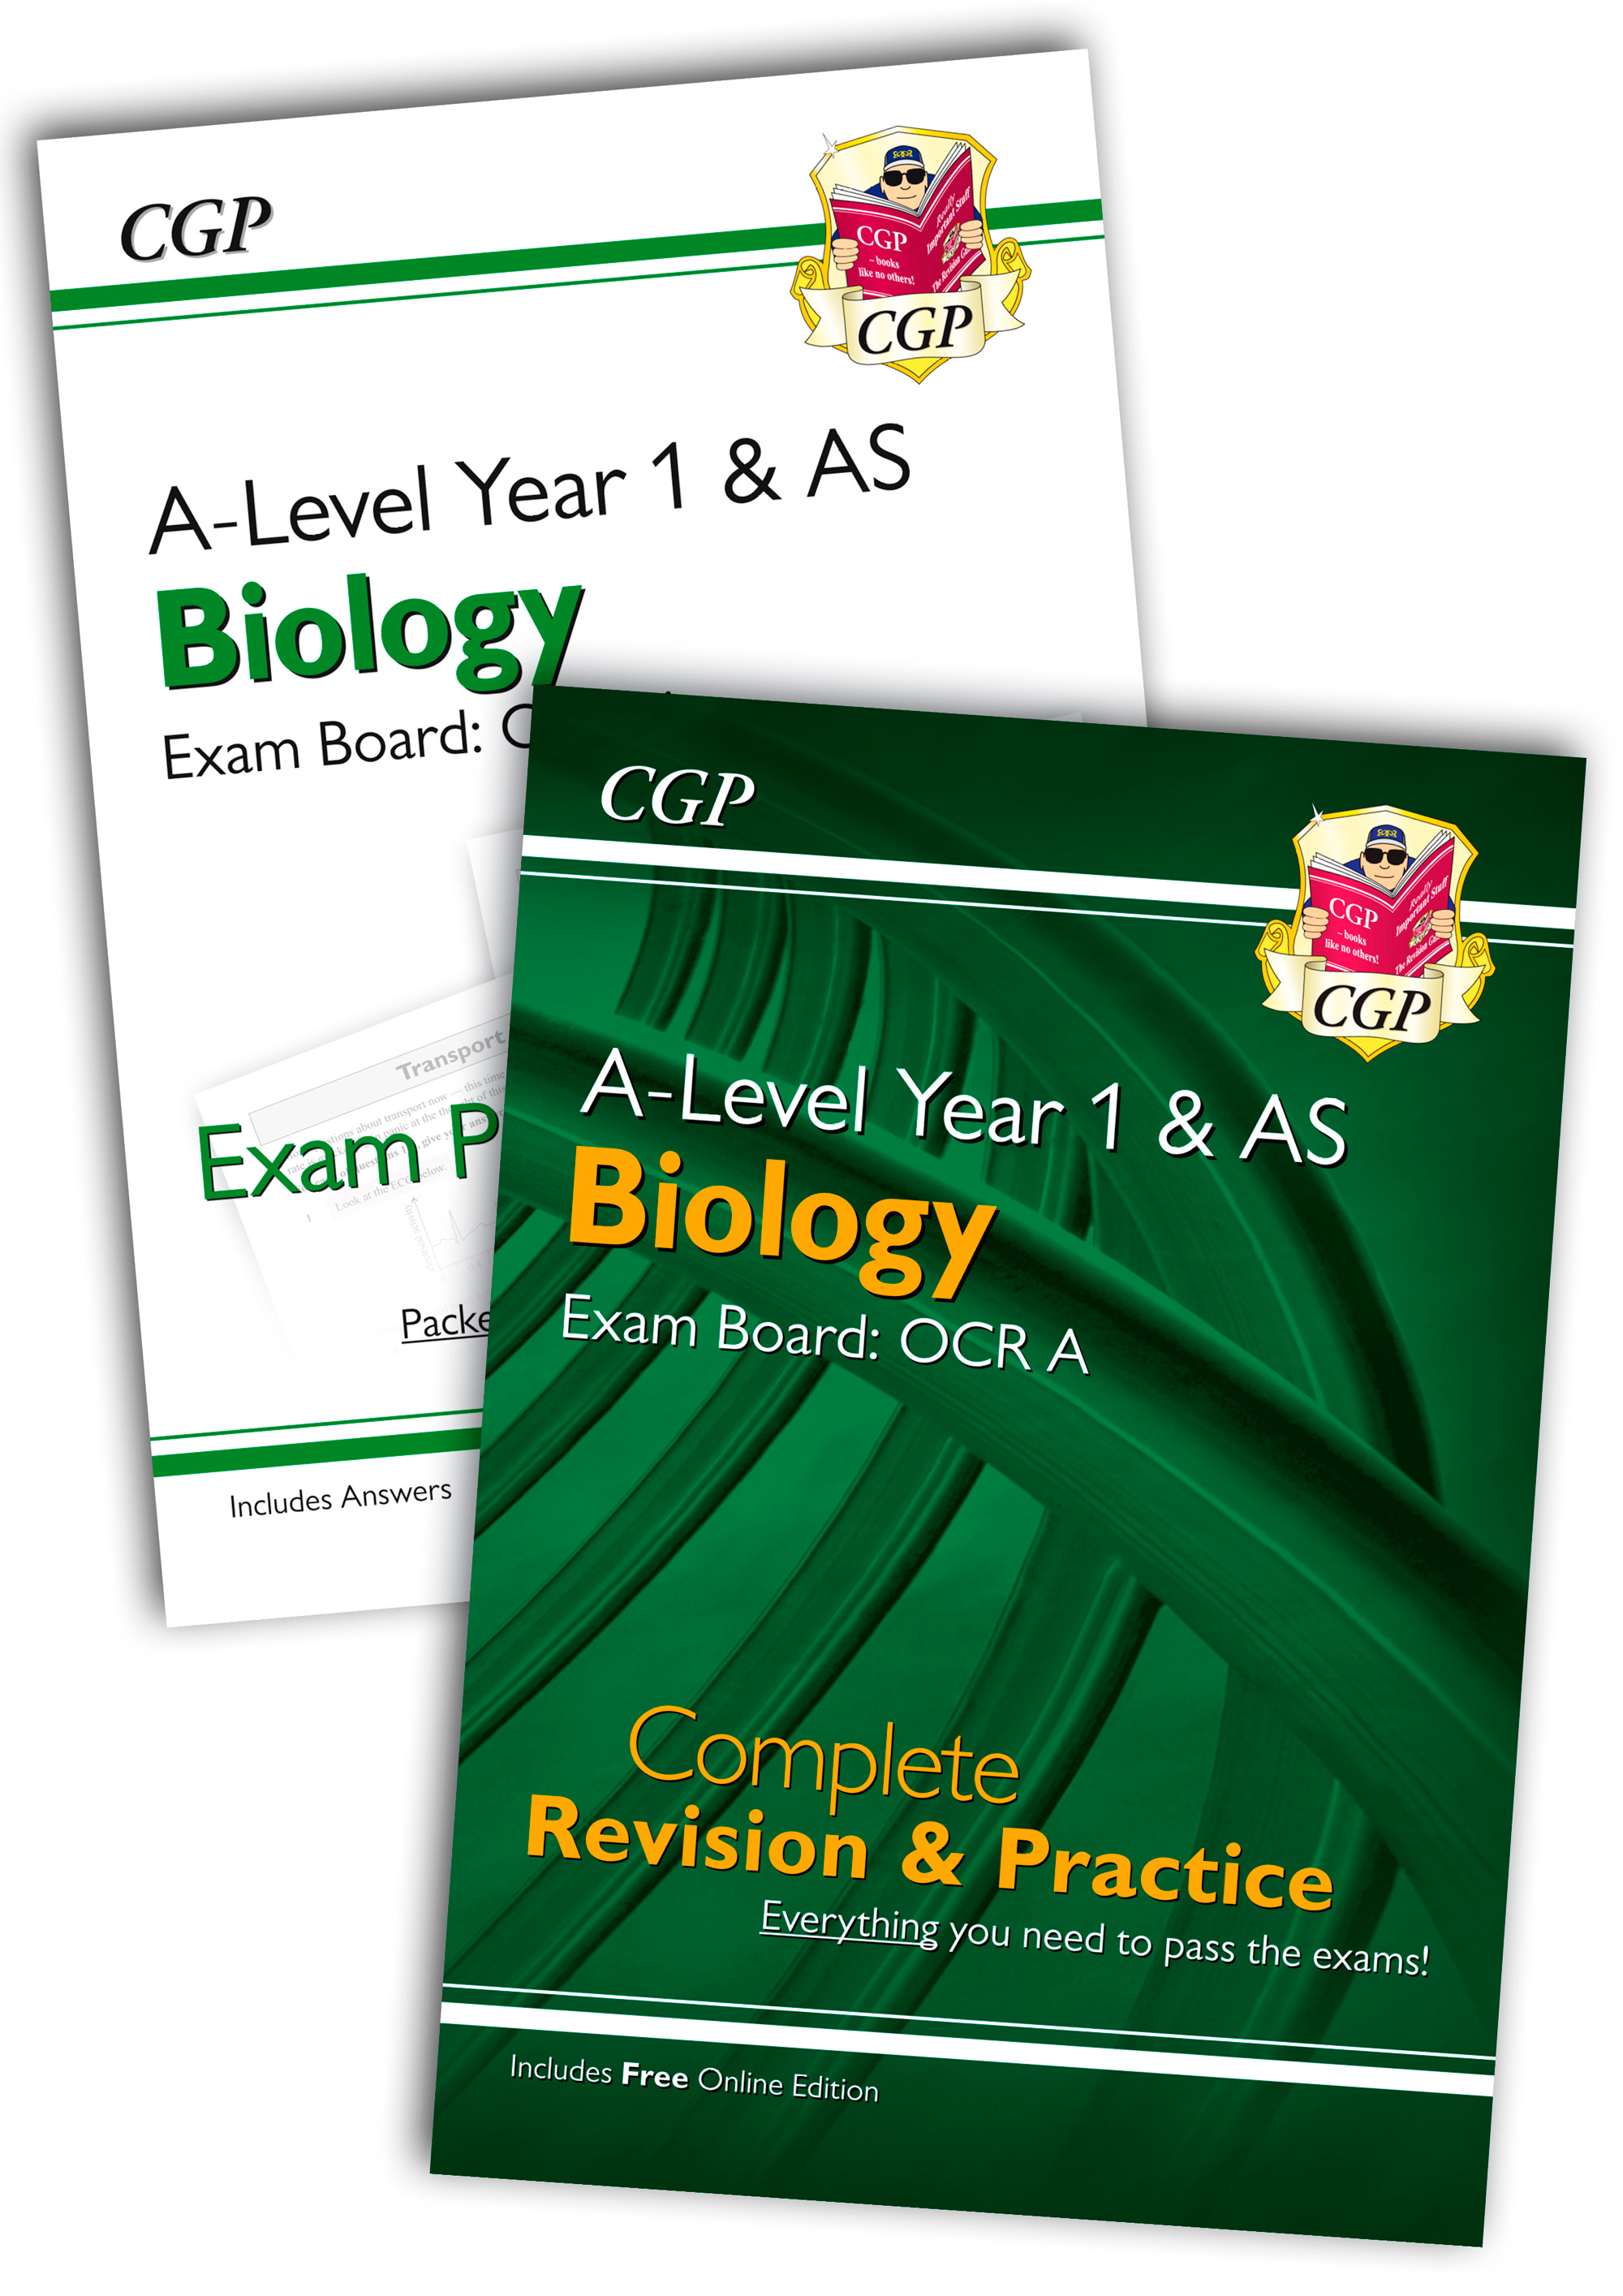 BRARQB51 - New 2018 Complete Revision and Exam Practice A-Level Biology Bundle: OCR A Year 1 & AS